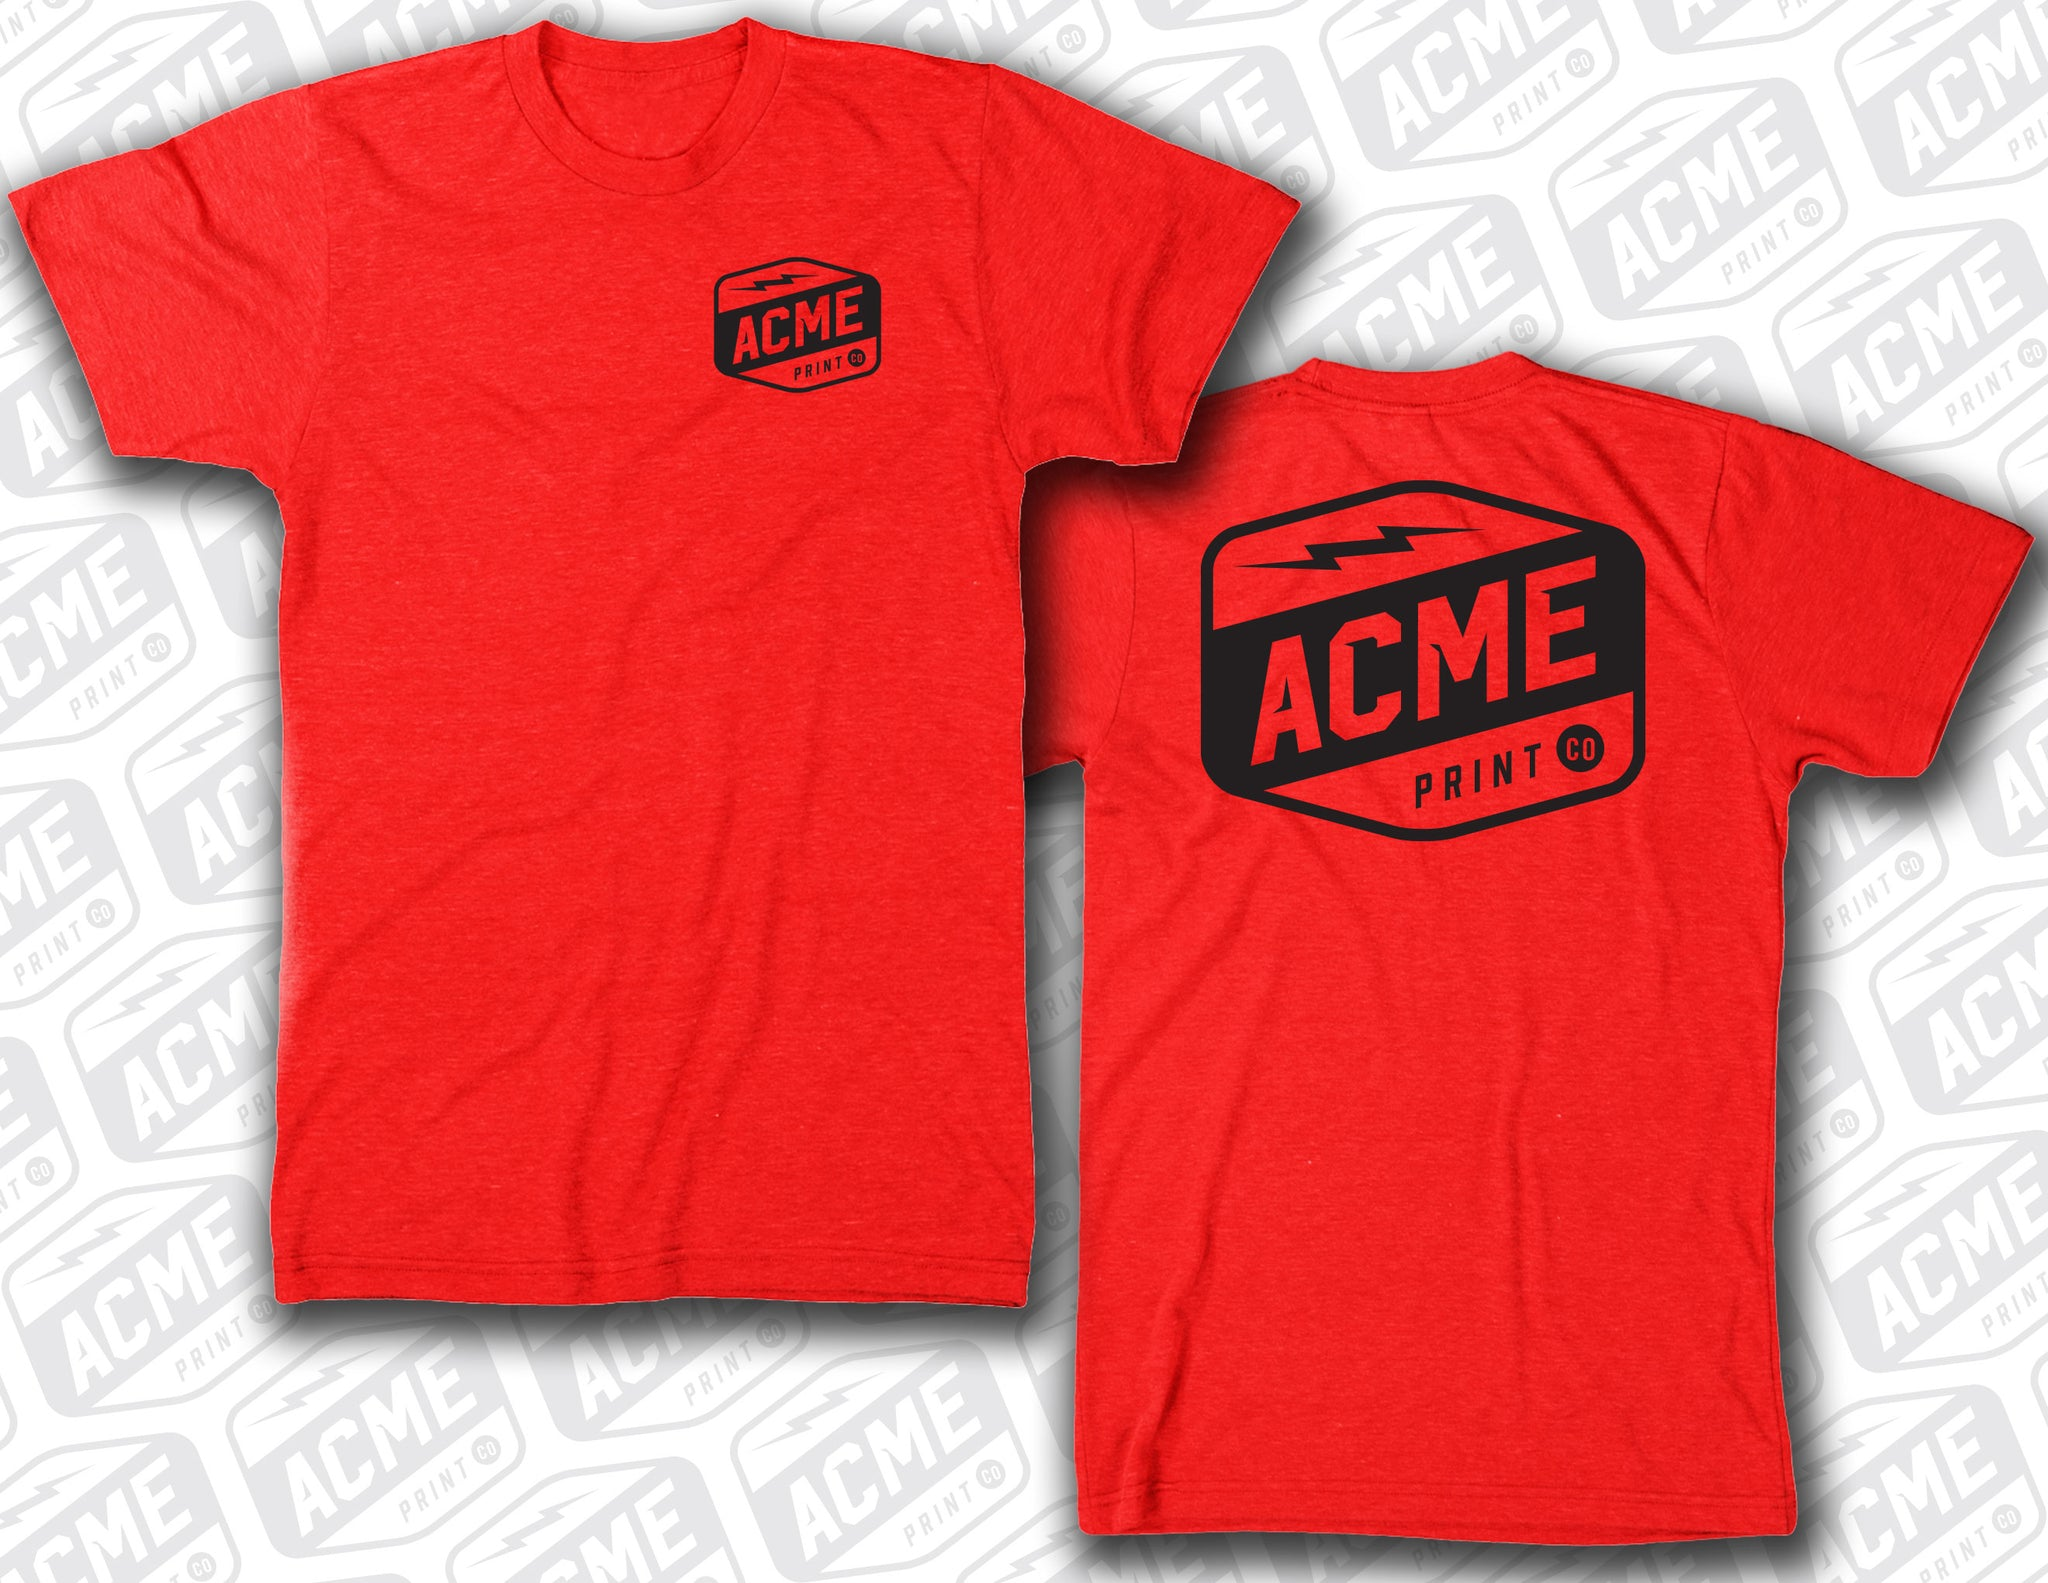 ACME - New School Red Tee